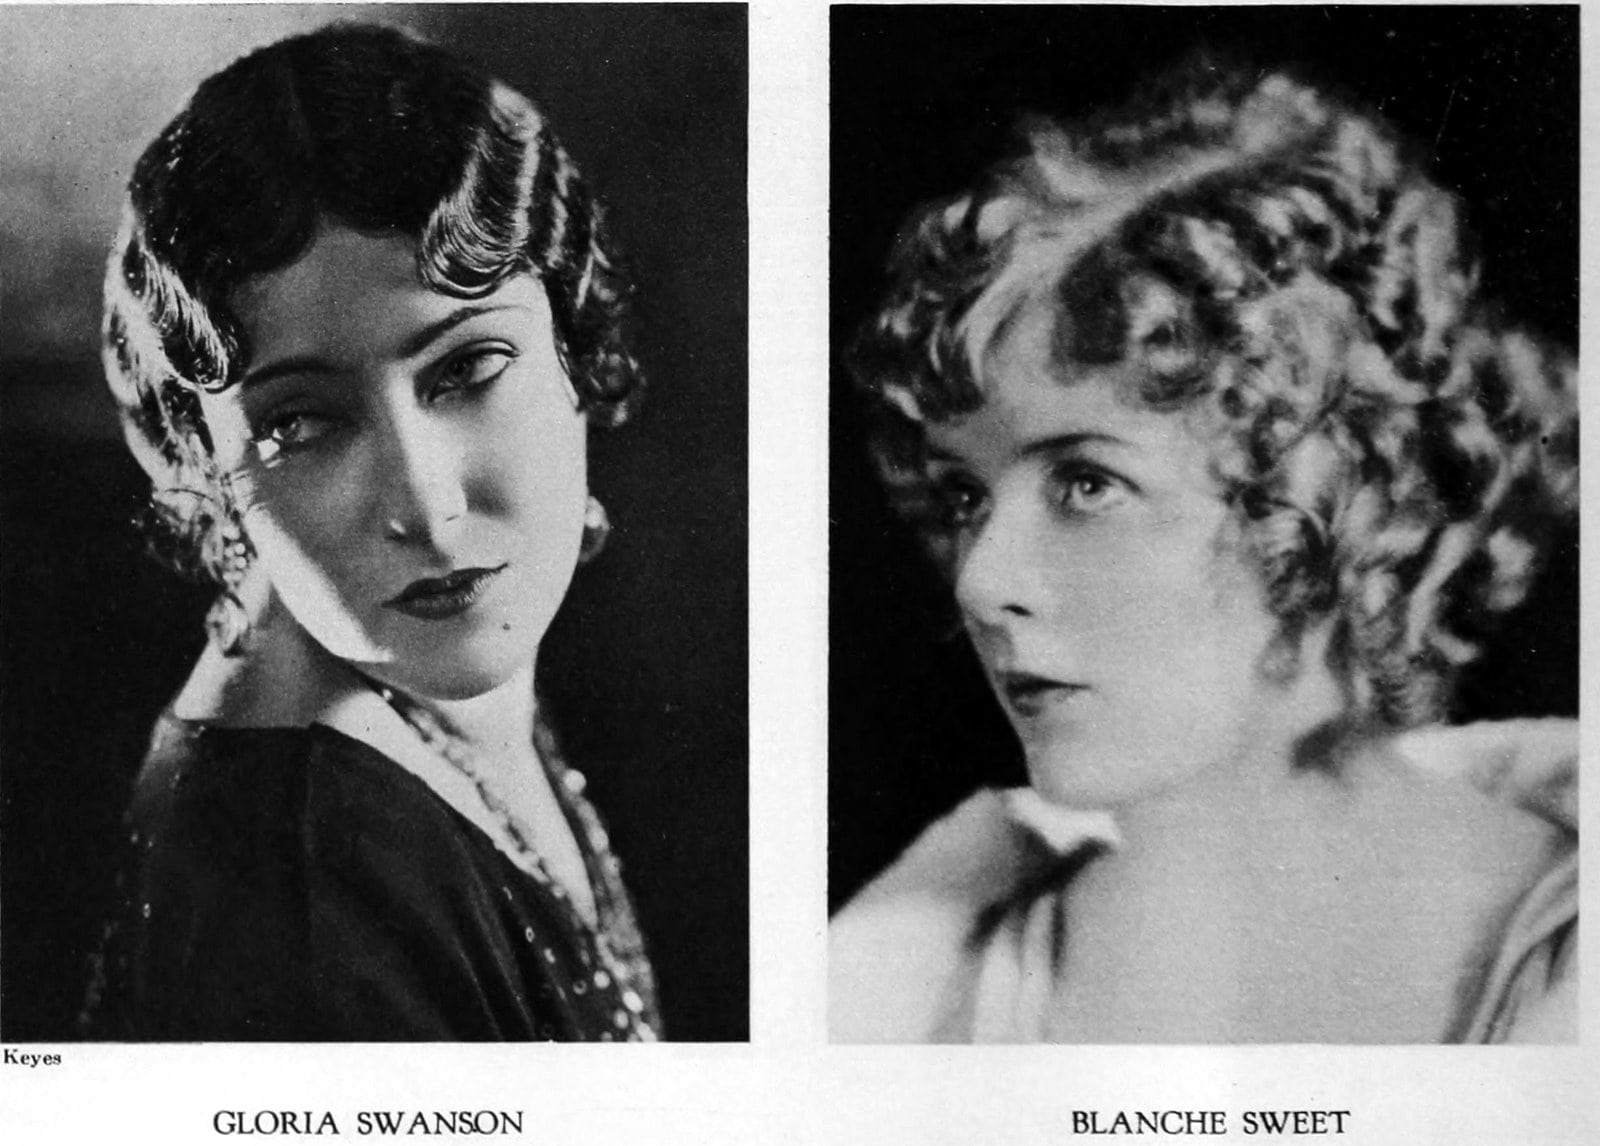 Vintage 1920s hairstyles for women - actresses Gloria Swanson and Blanche Sweet